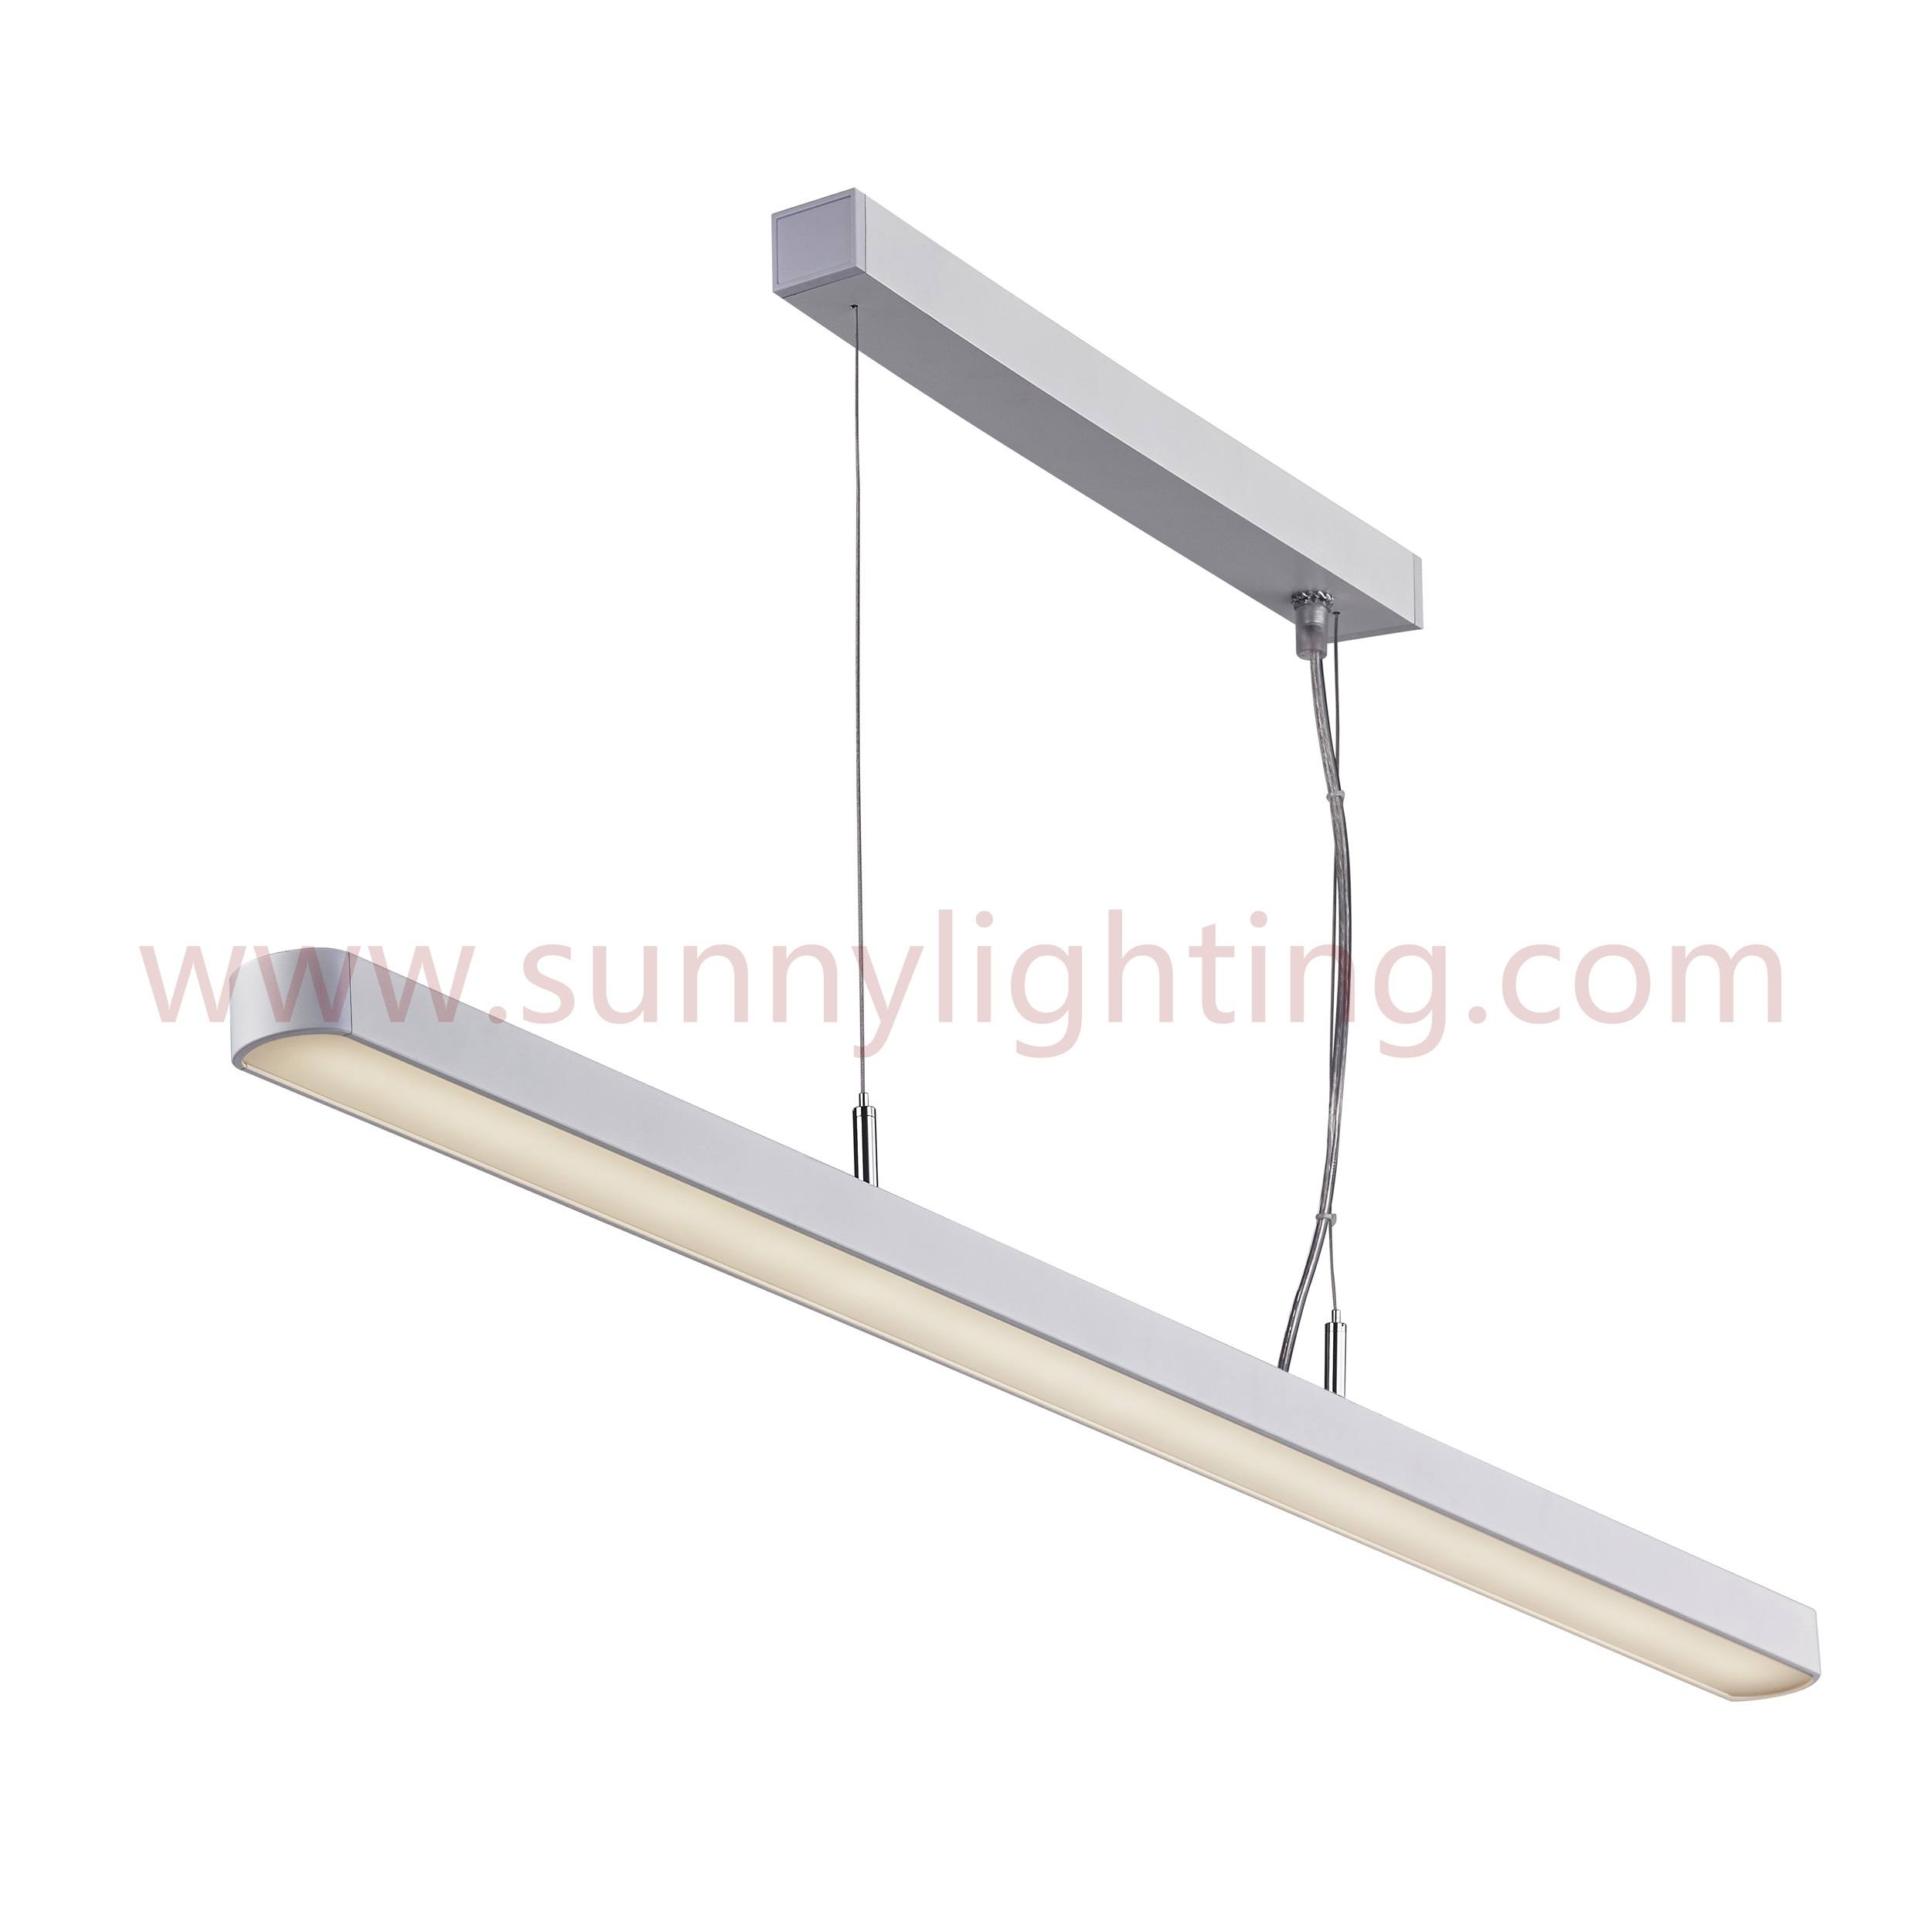 LED Linear Light 10.8W/14.4W/18W LED-060A